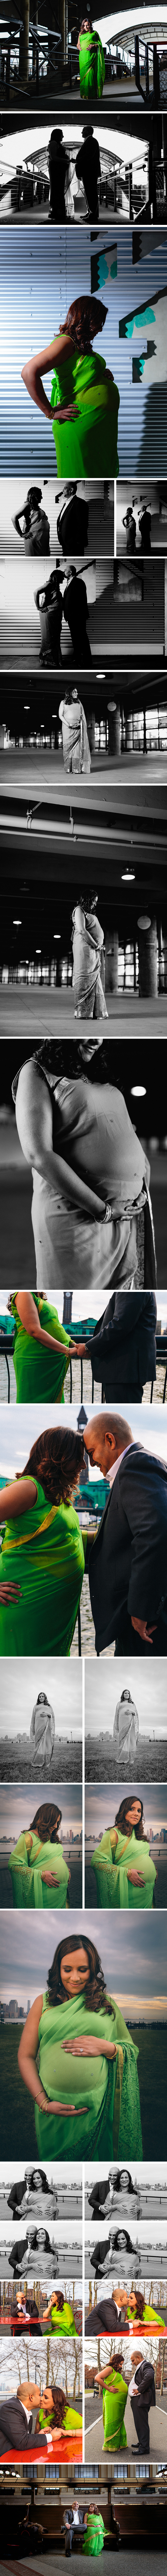 Mindi Nair maternity session in Hoboken, New Jersey